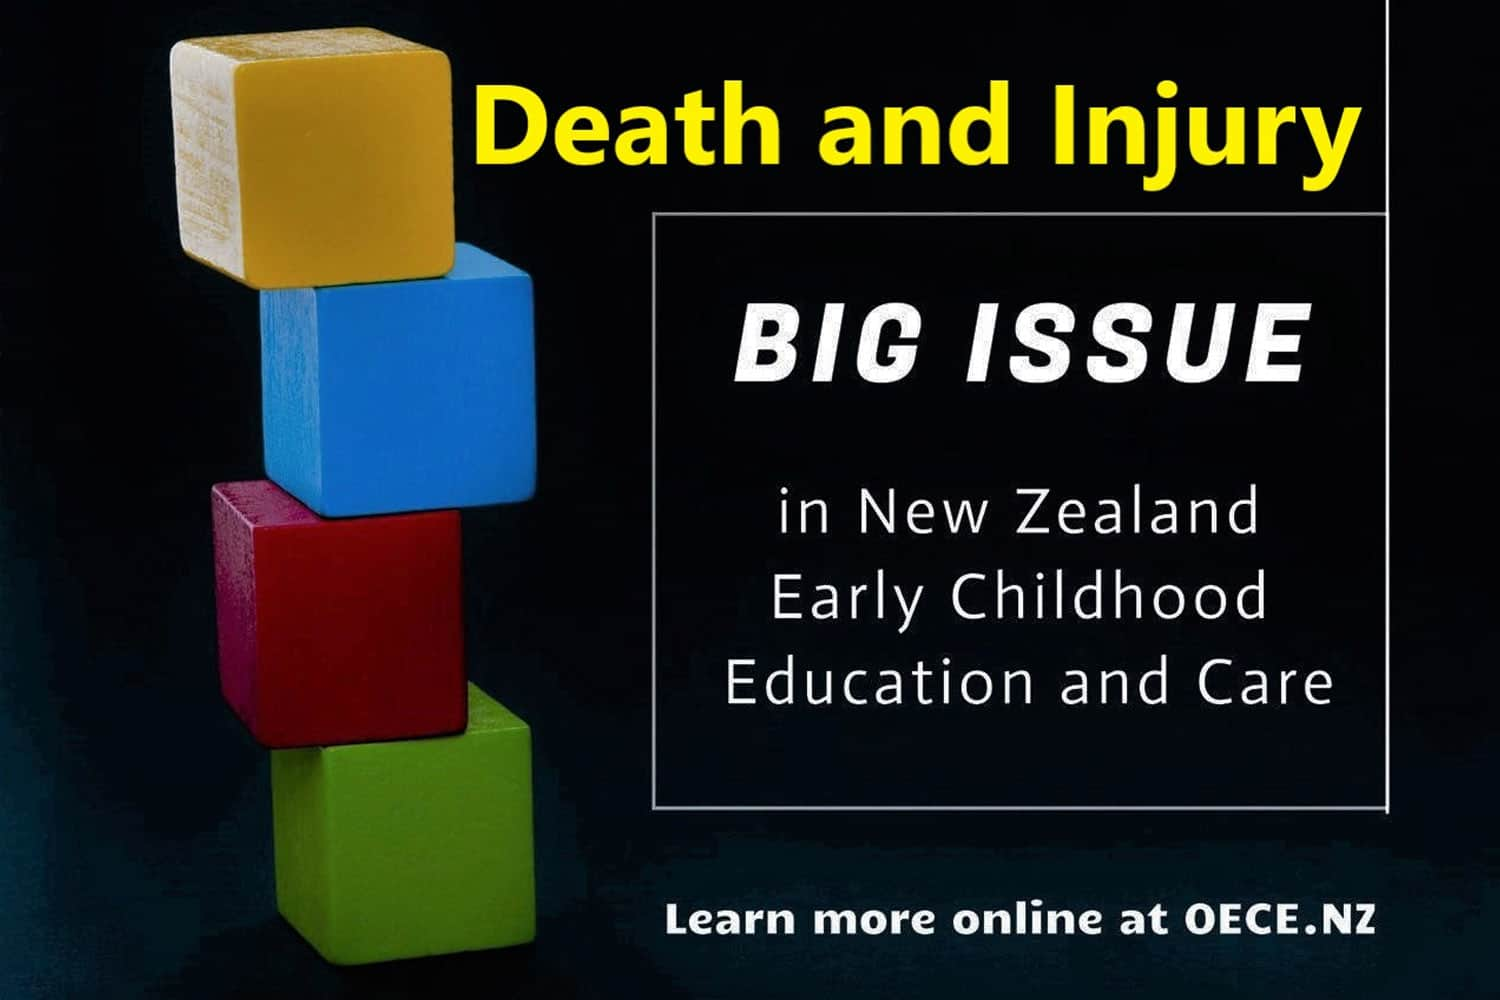 Preventing child death and injury